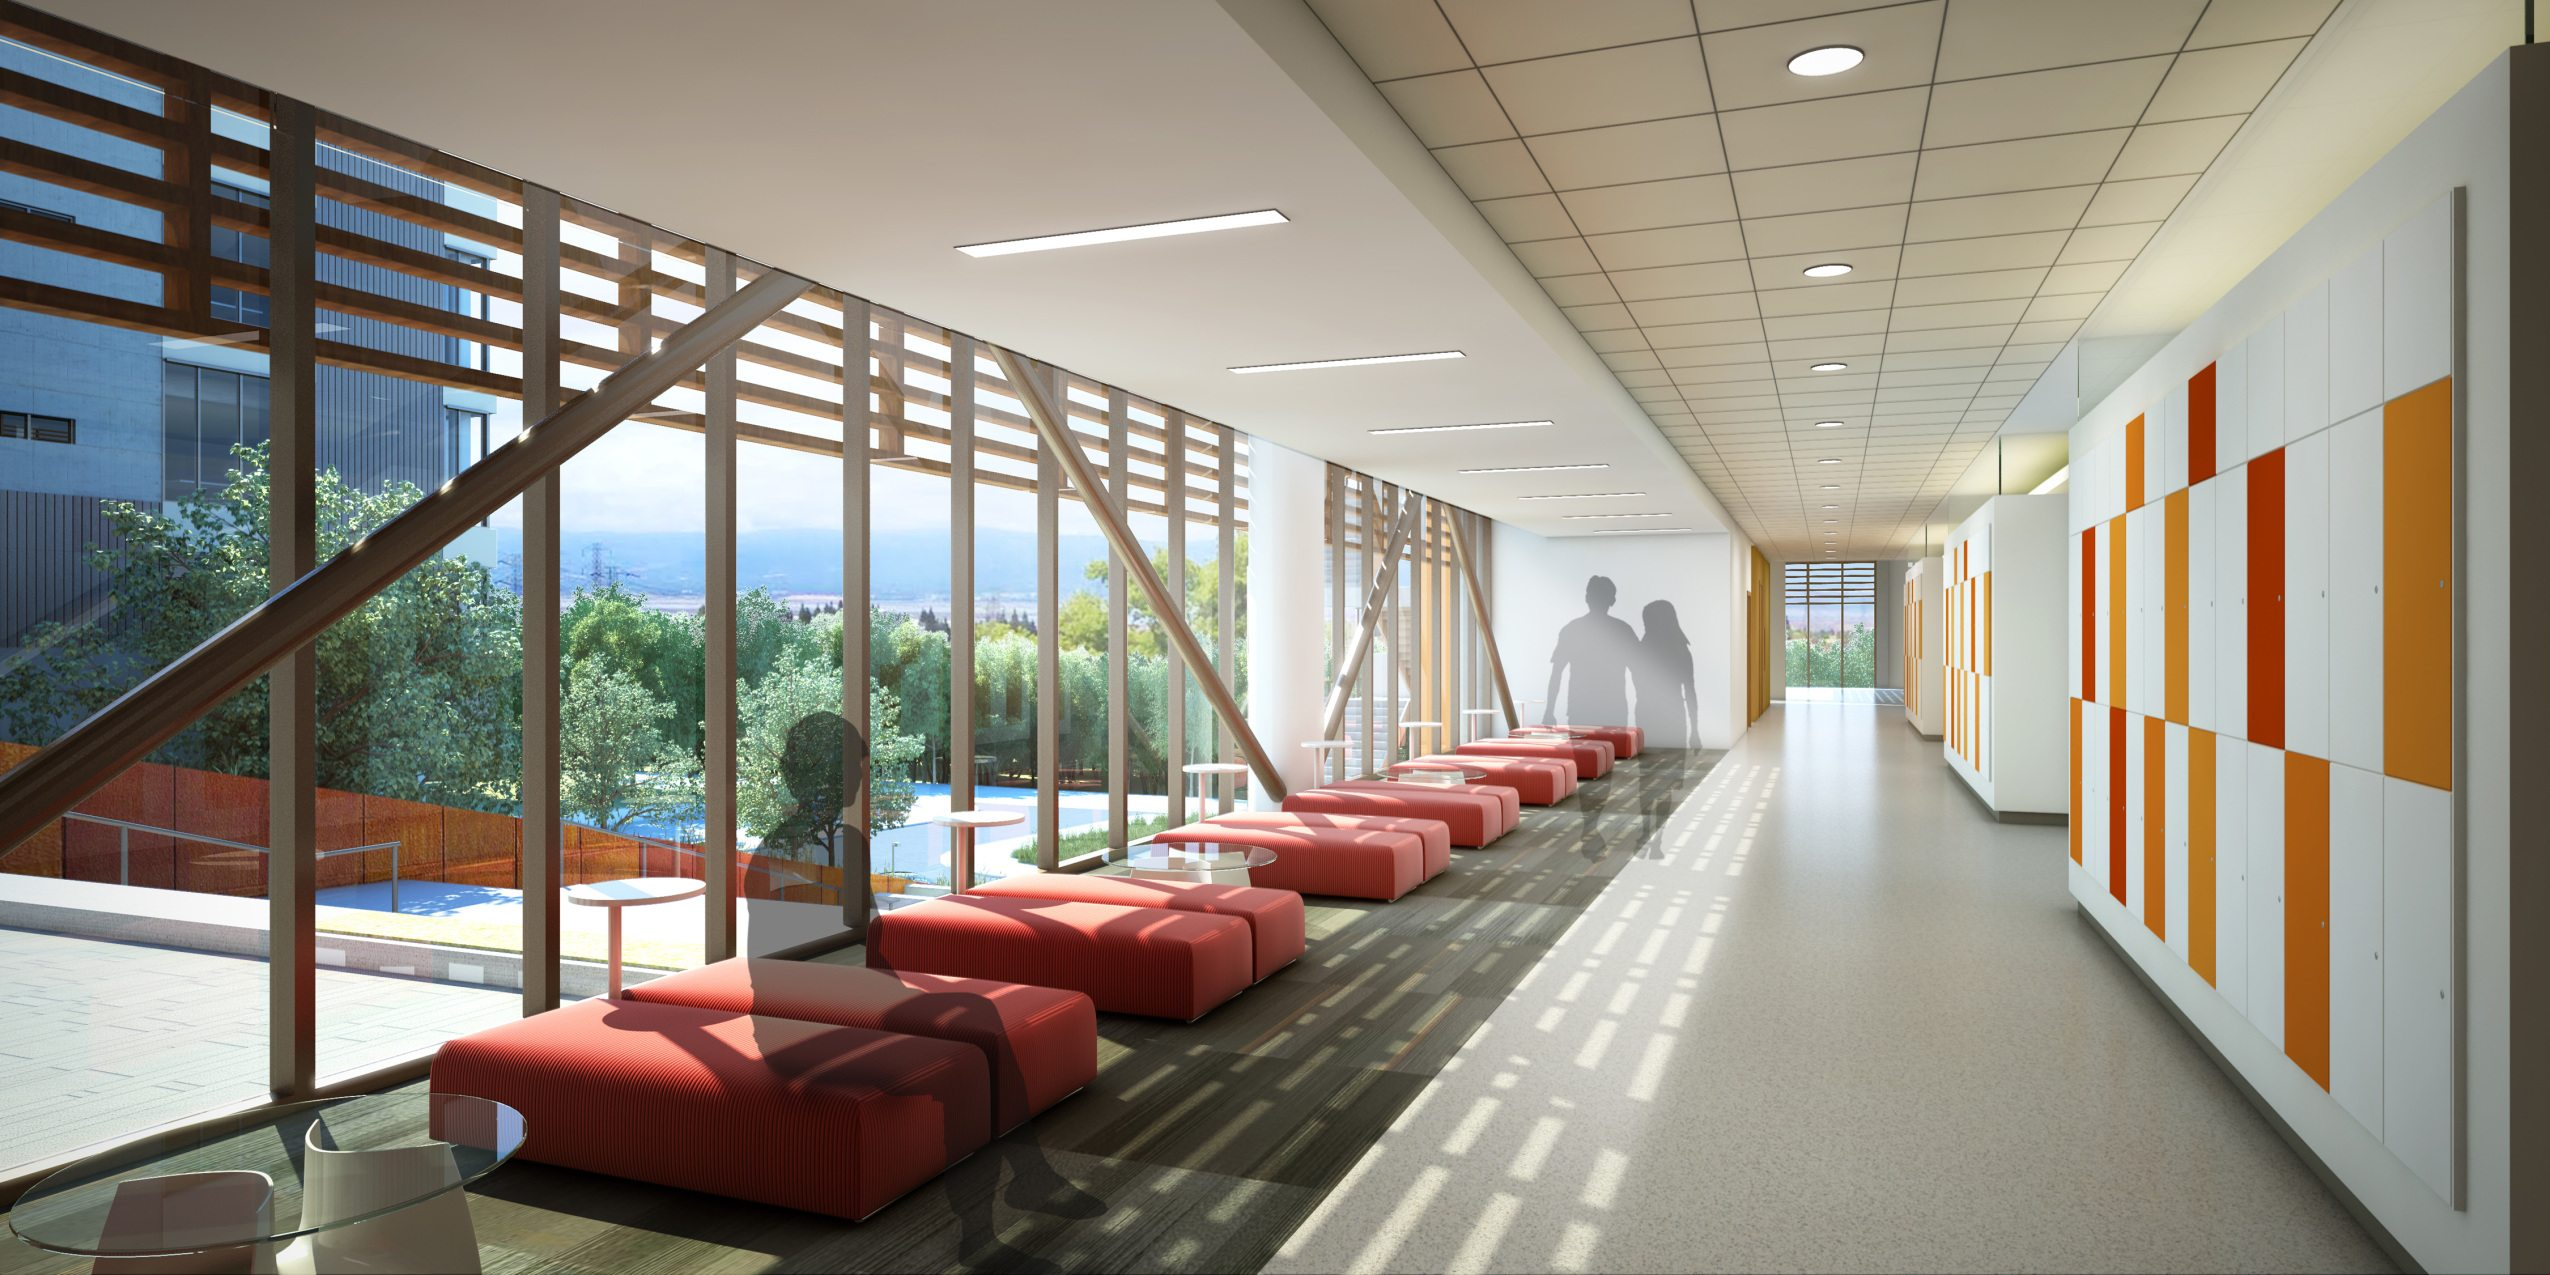 and arts interior design winner pc architects engineers macal center macalester wallace fine hga college by market janet